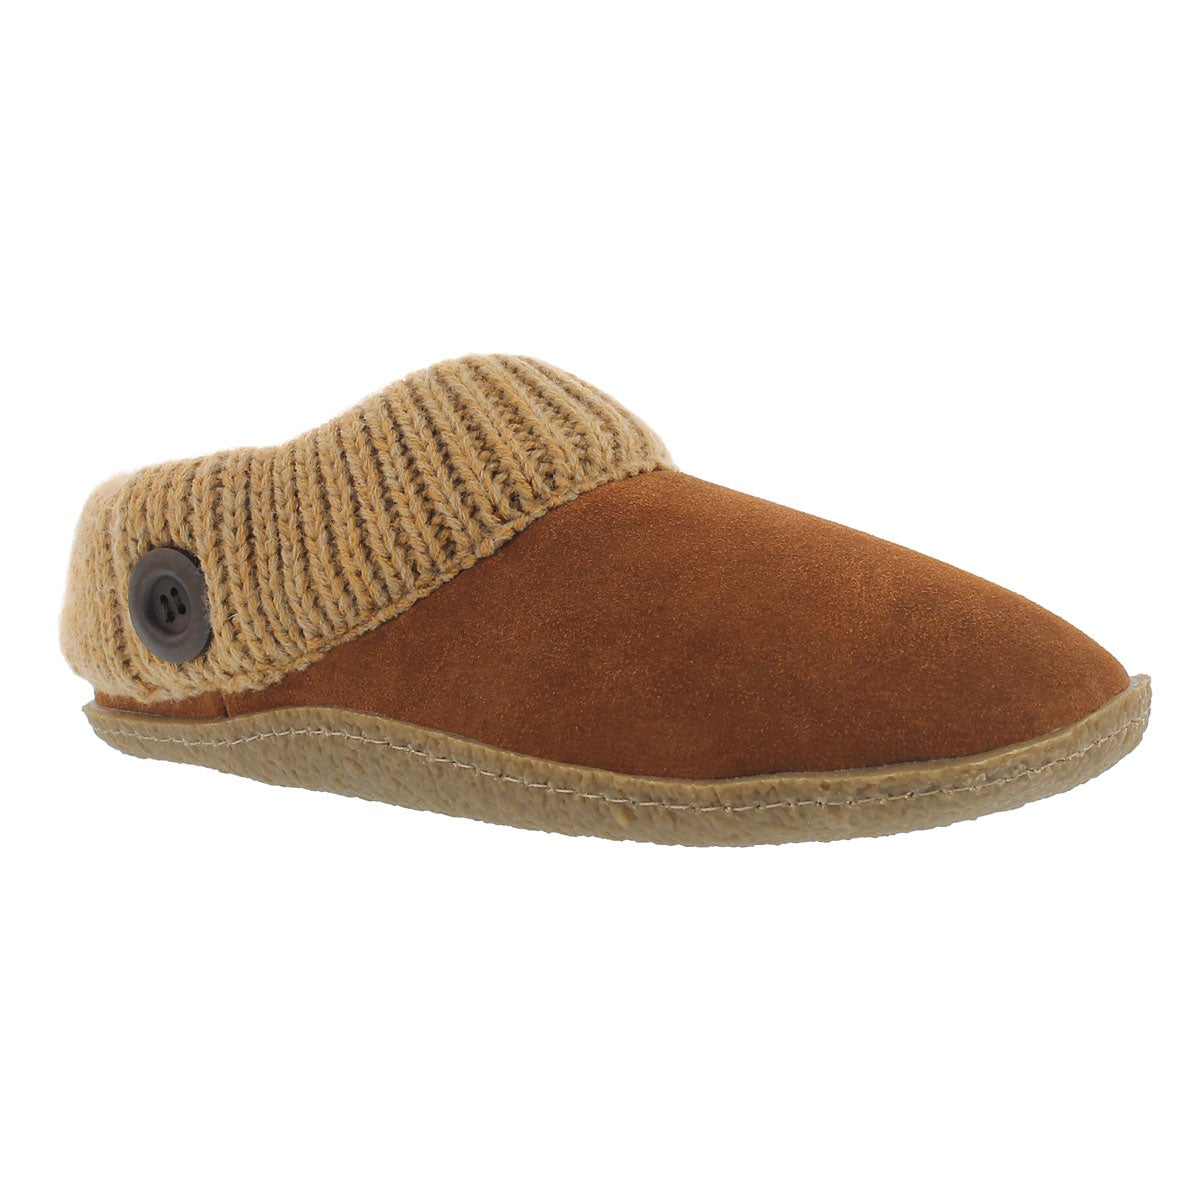 Women's DINI chestnut memory foam slippers